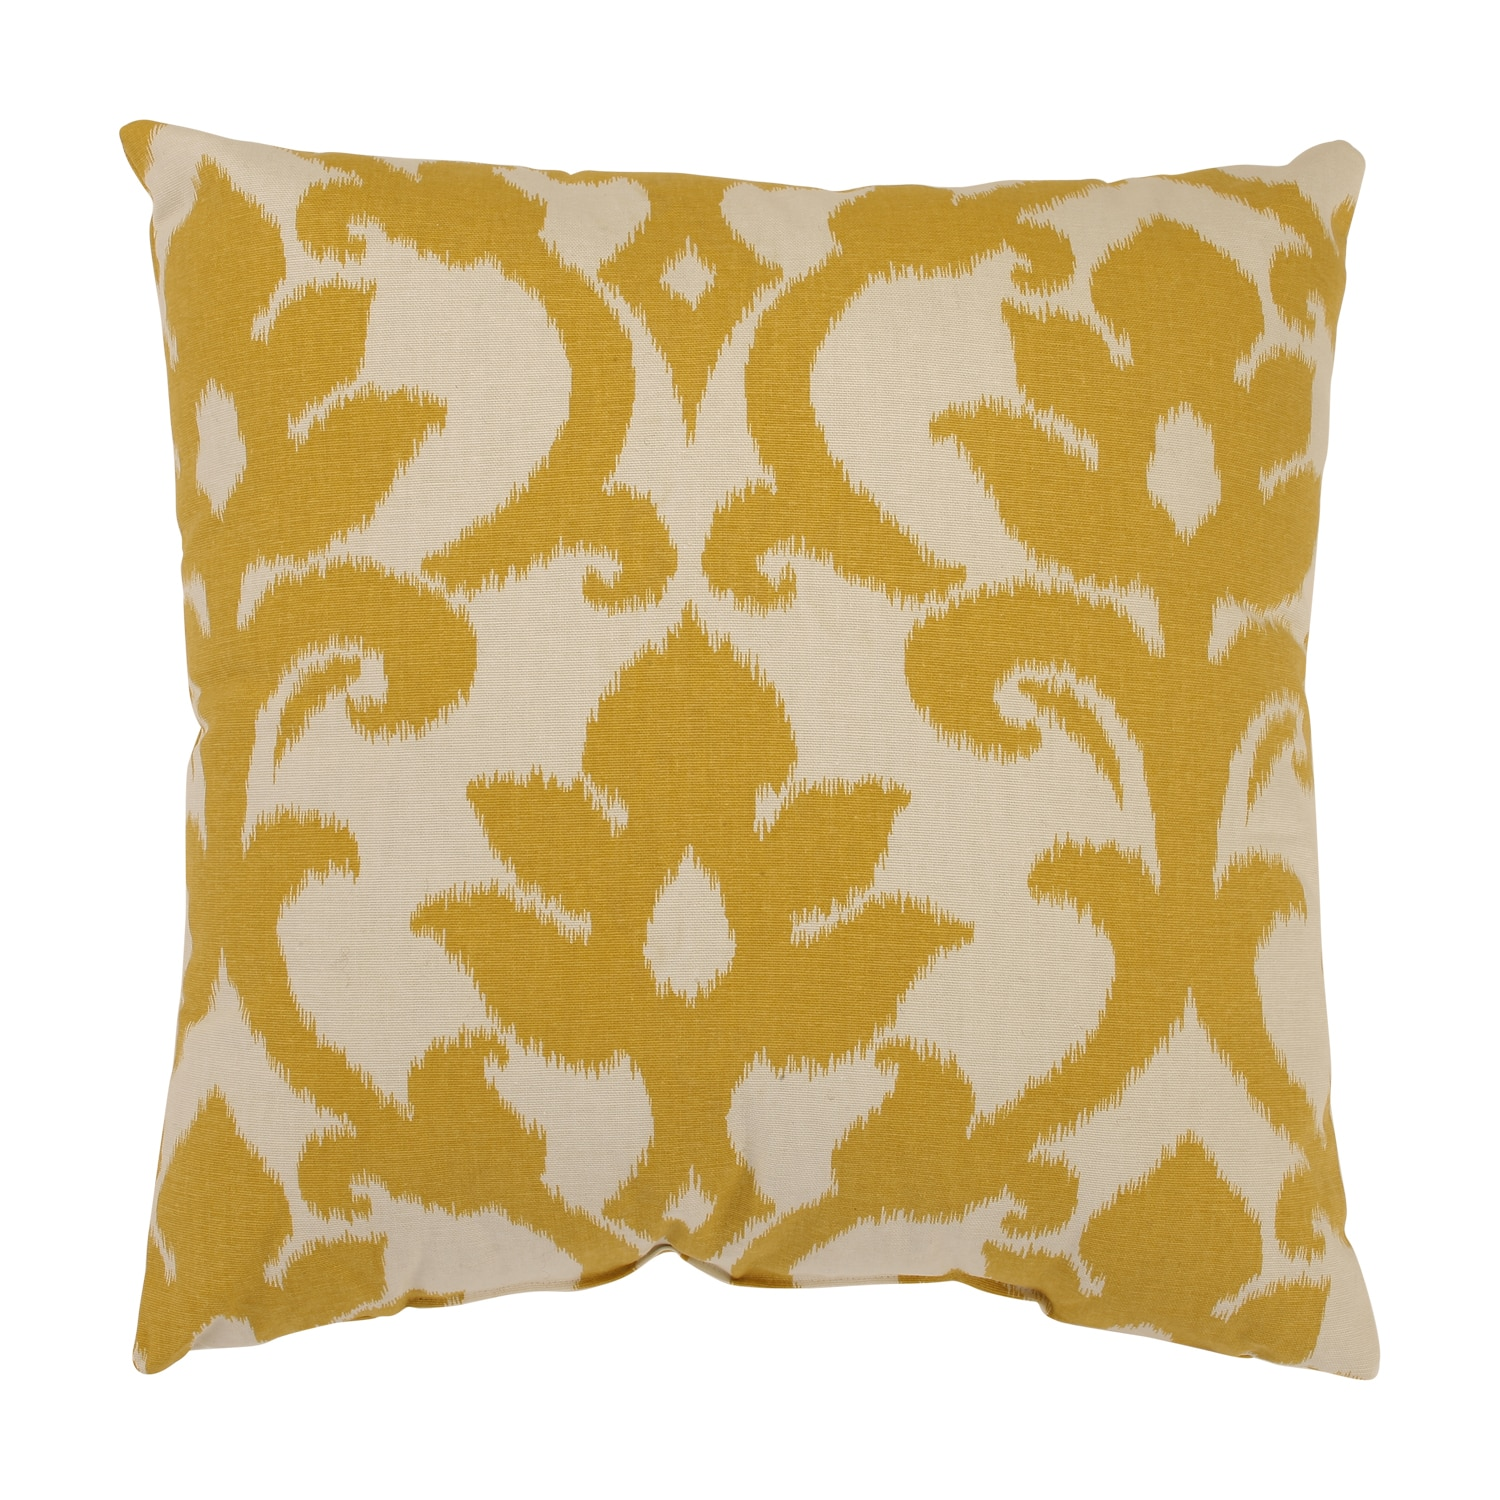 throw pillow vogue elm pillows side of easy a ways decor home west from gold decorate to